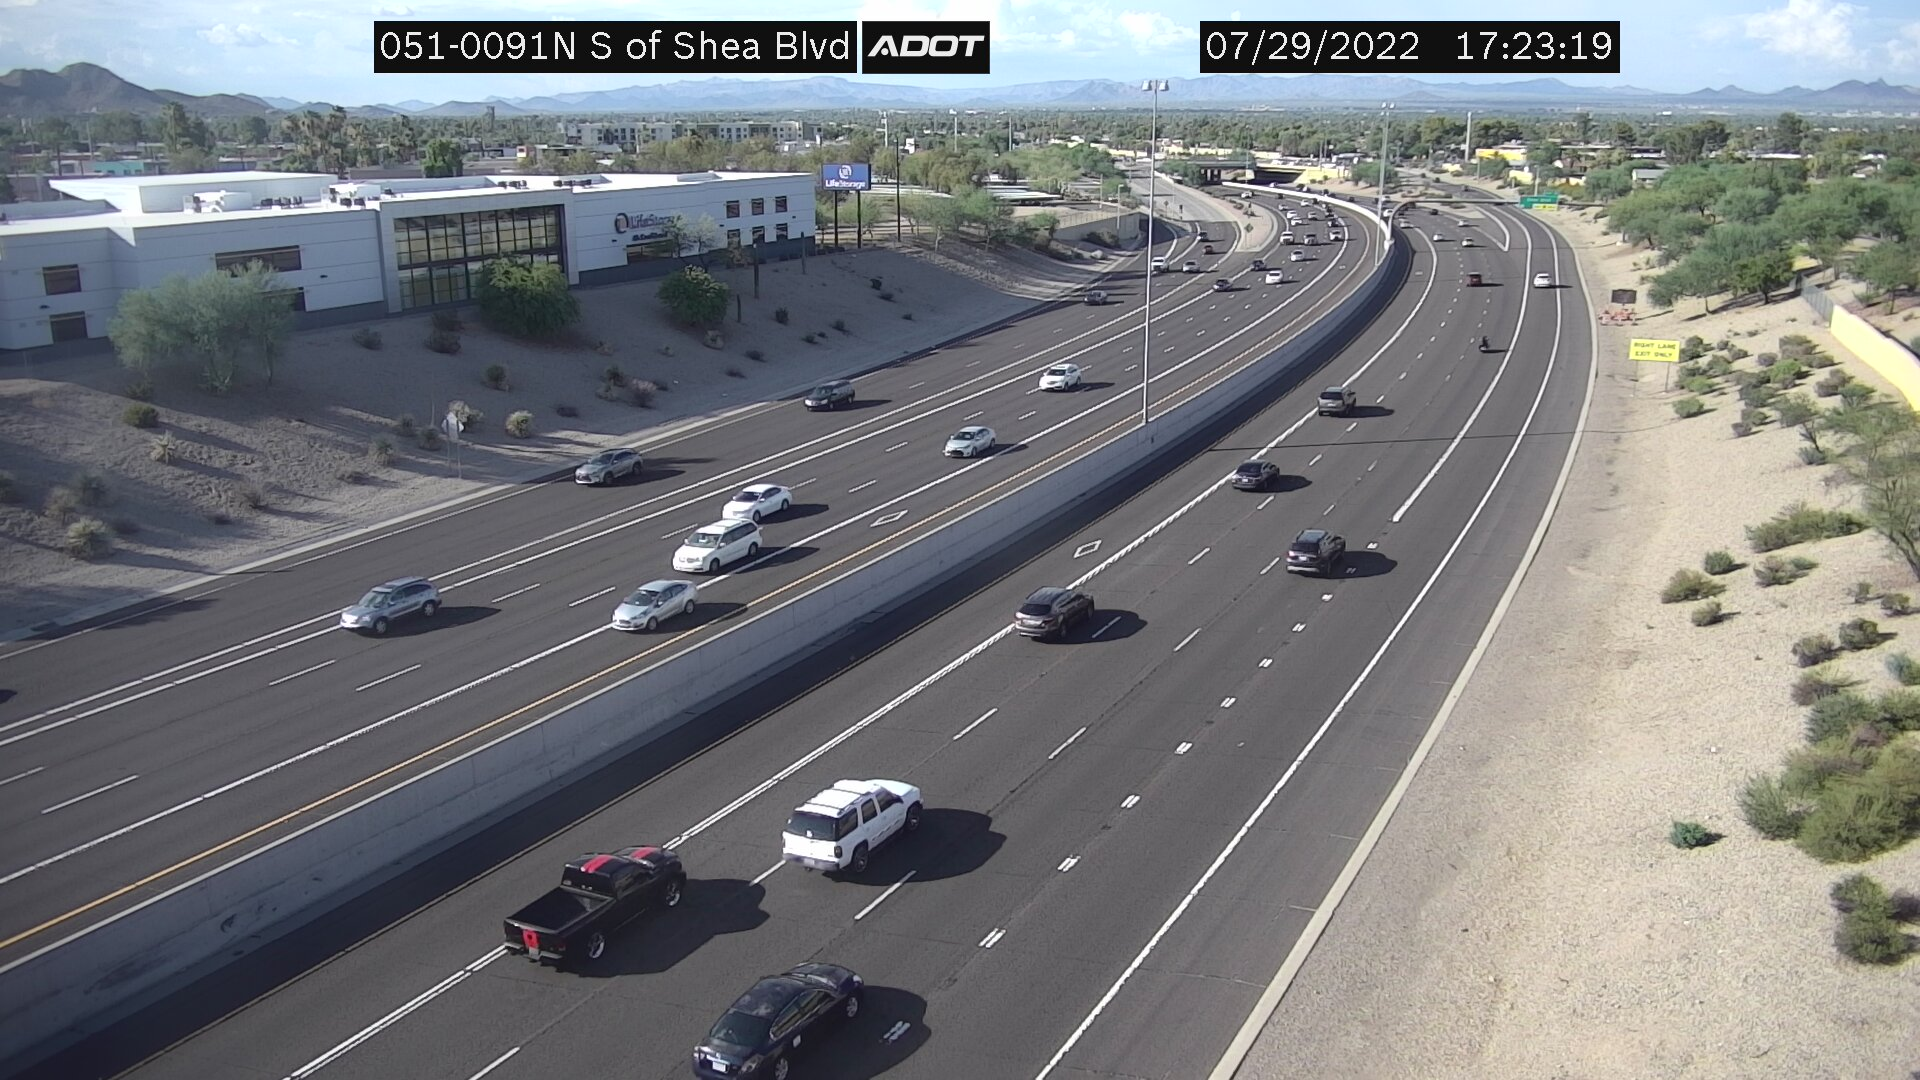 SR51 - South of Shea Blvd